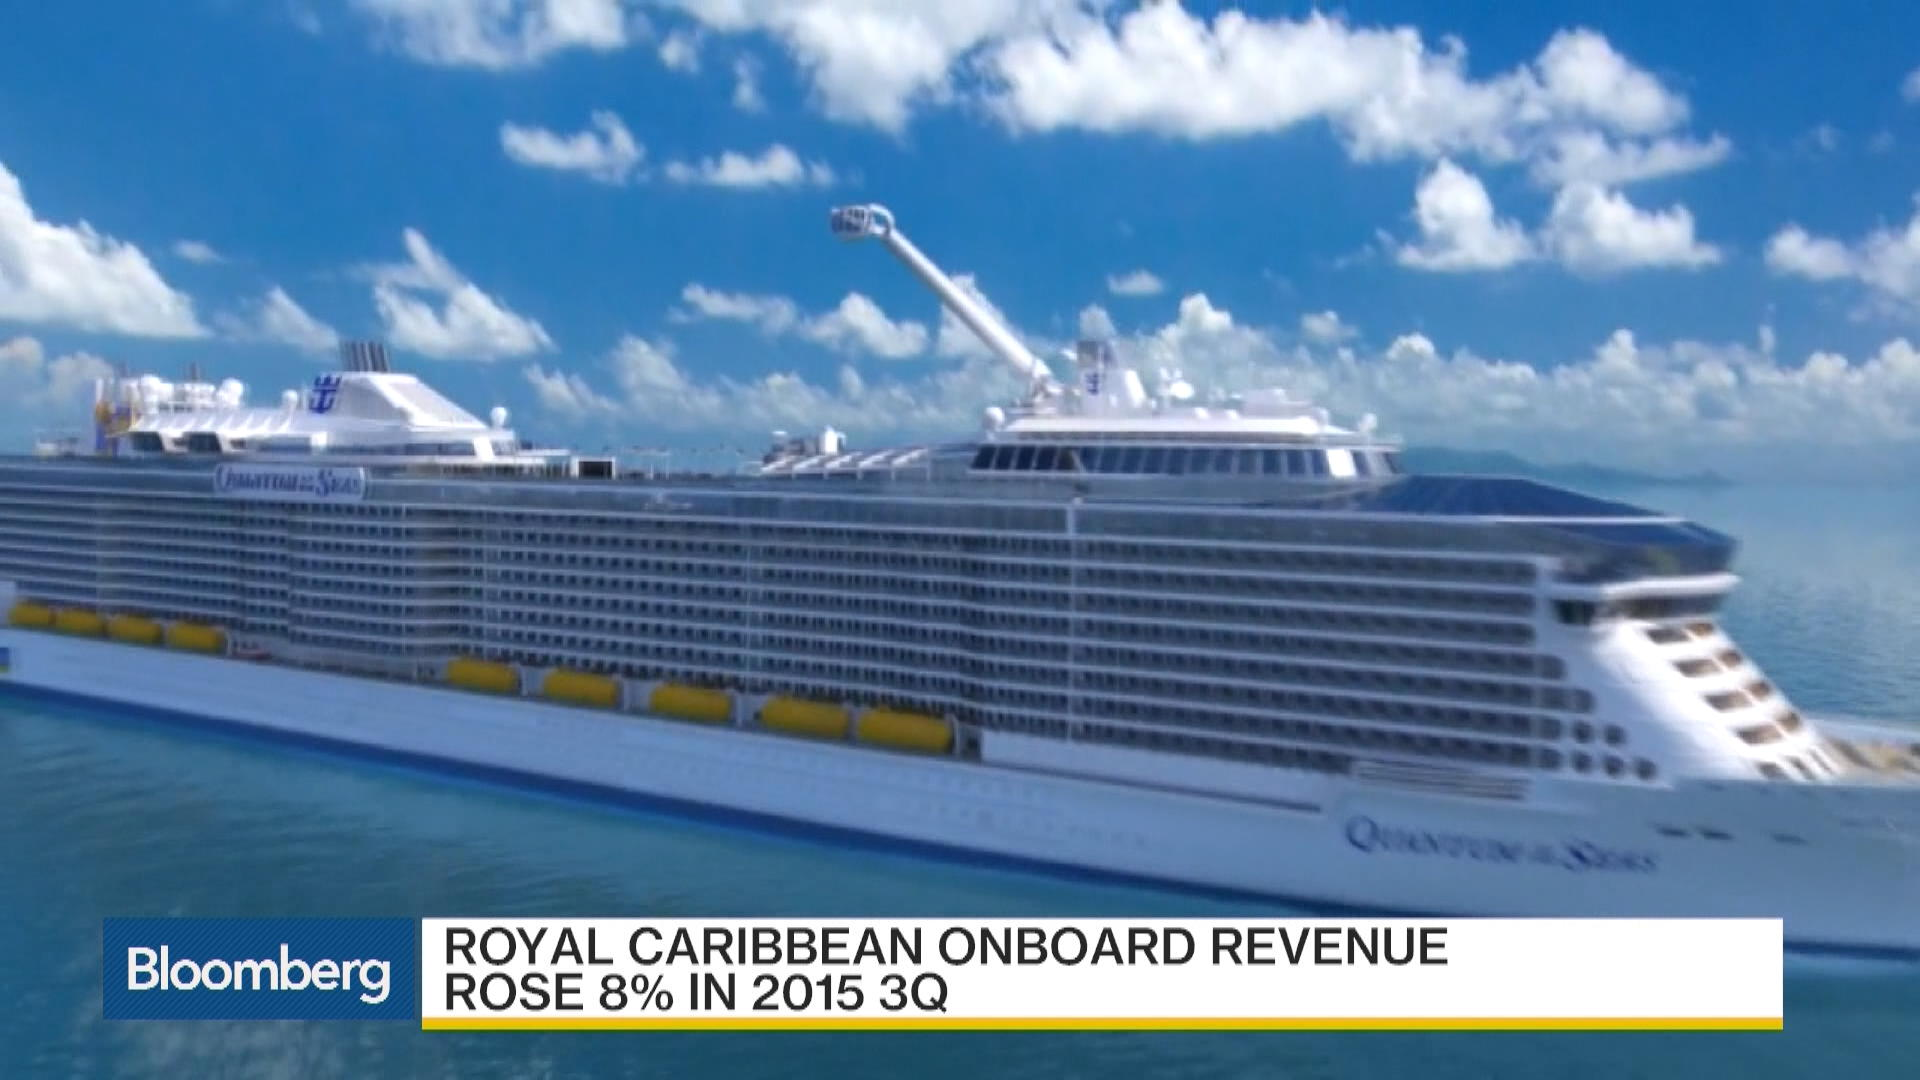 RCL:New York Stock Quote - Royal Caribbean Cruises Ltd - Bloomberg